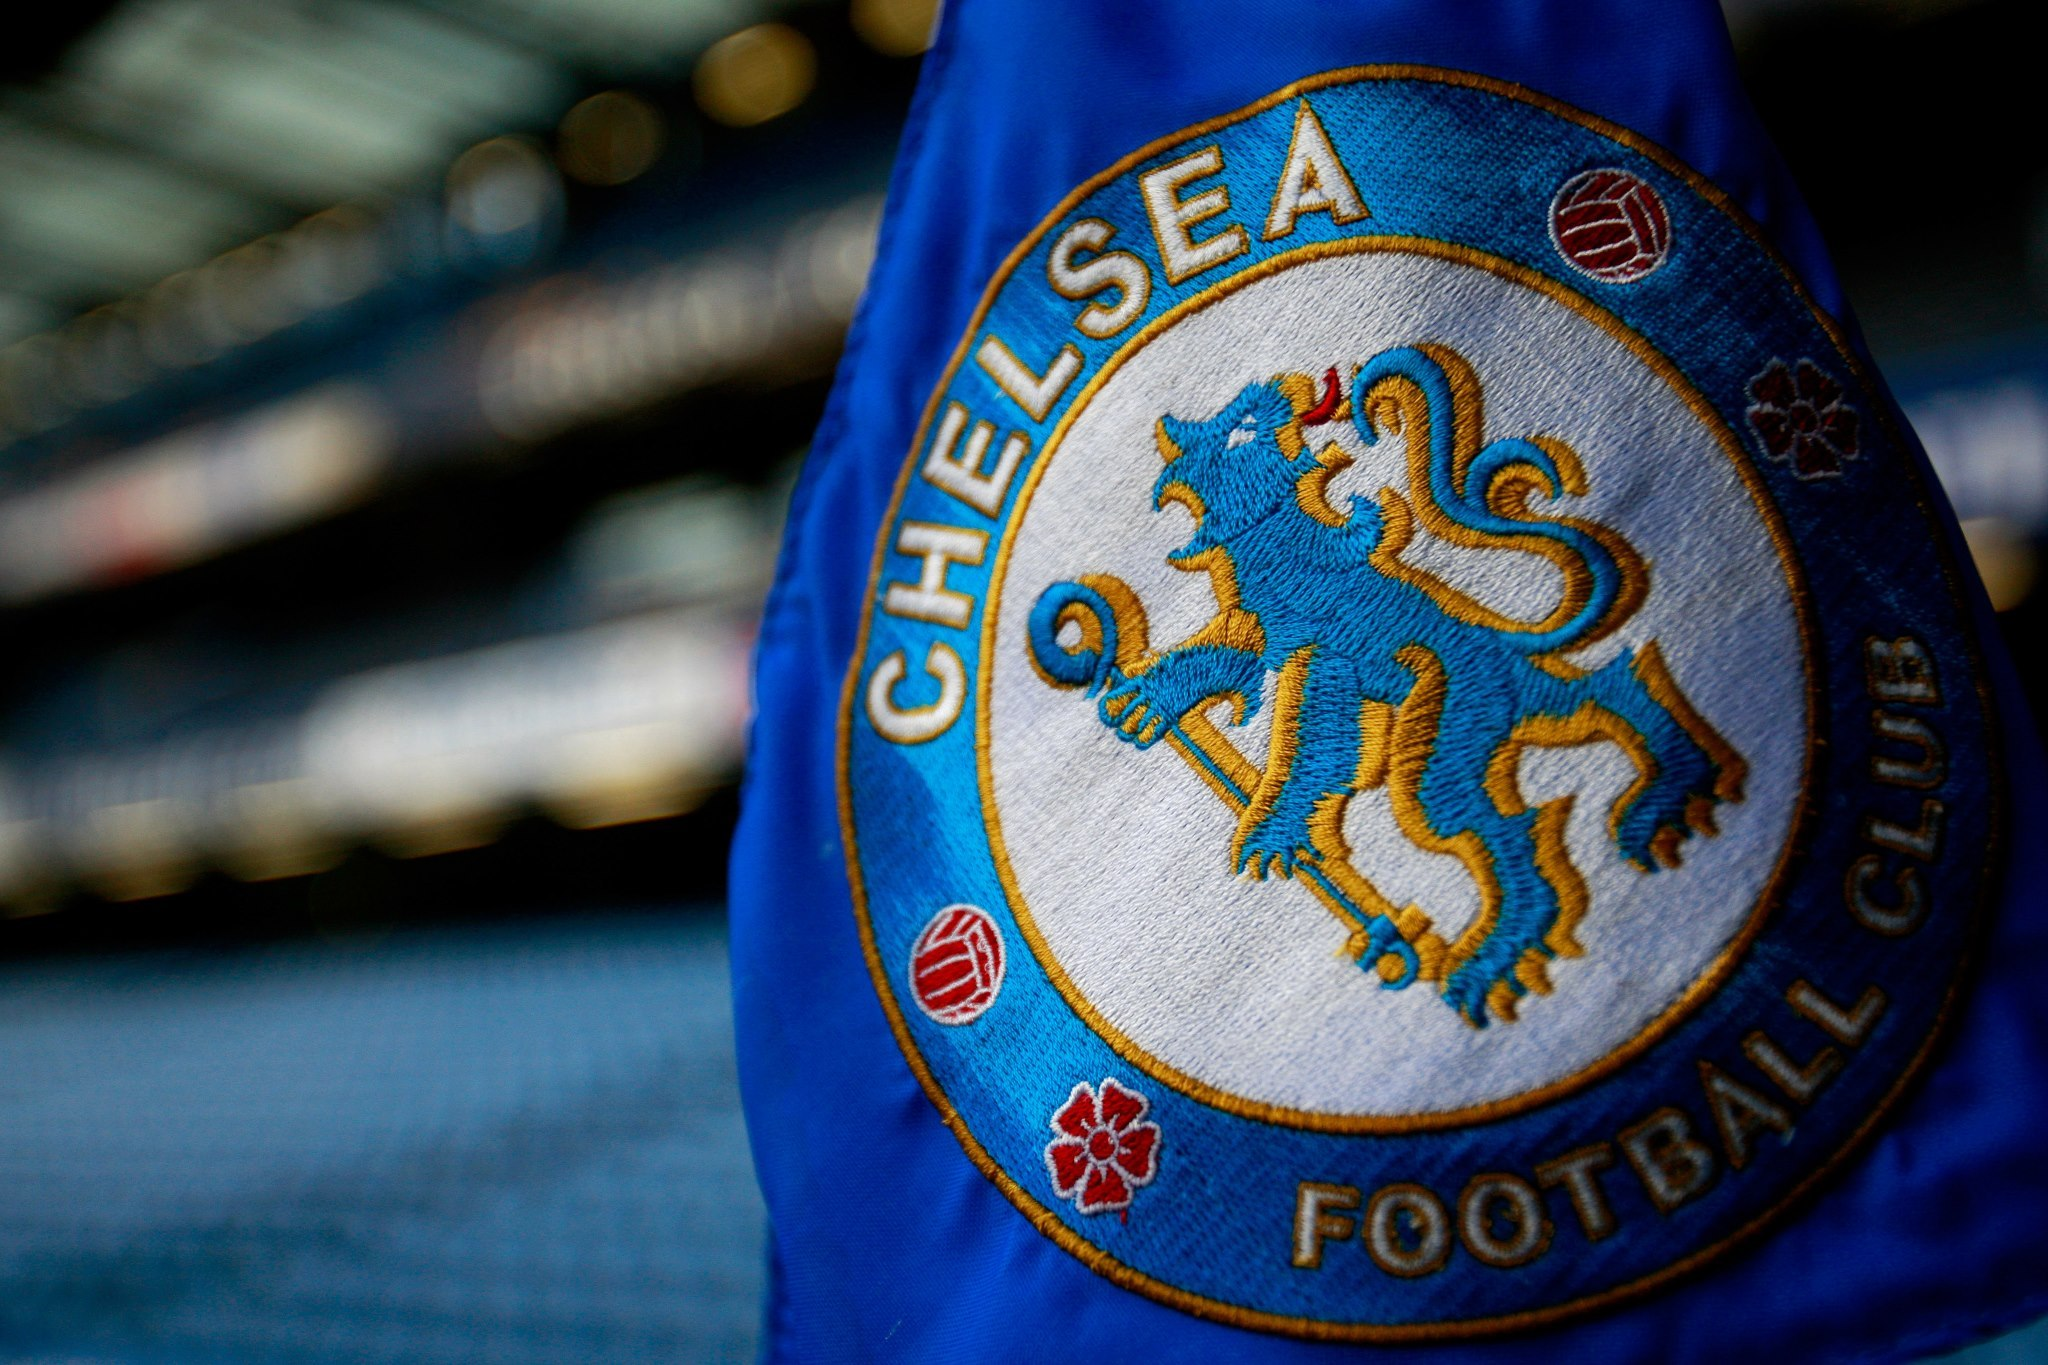 Chelsea Fc Hd Wallpaper Background Image 2048x1365